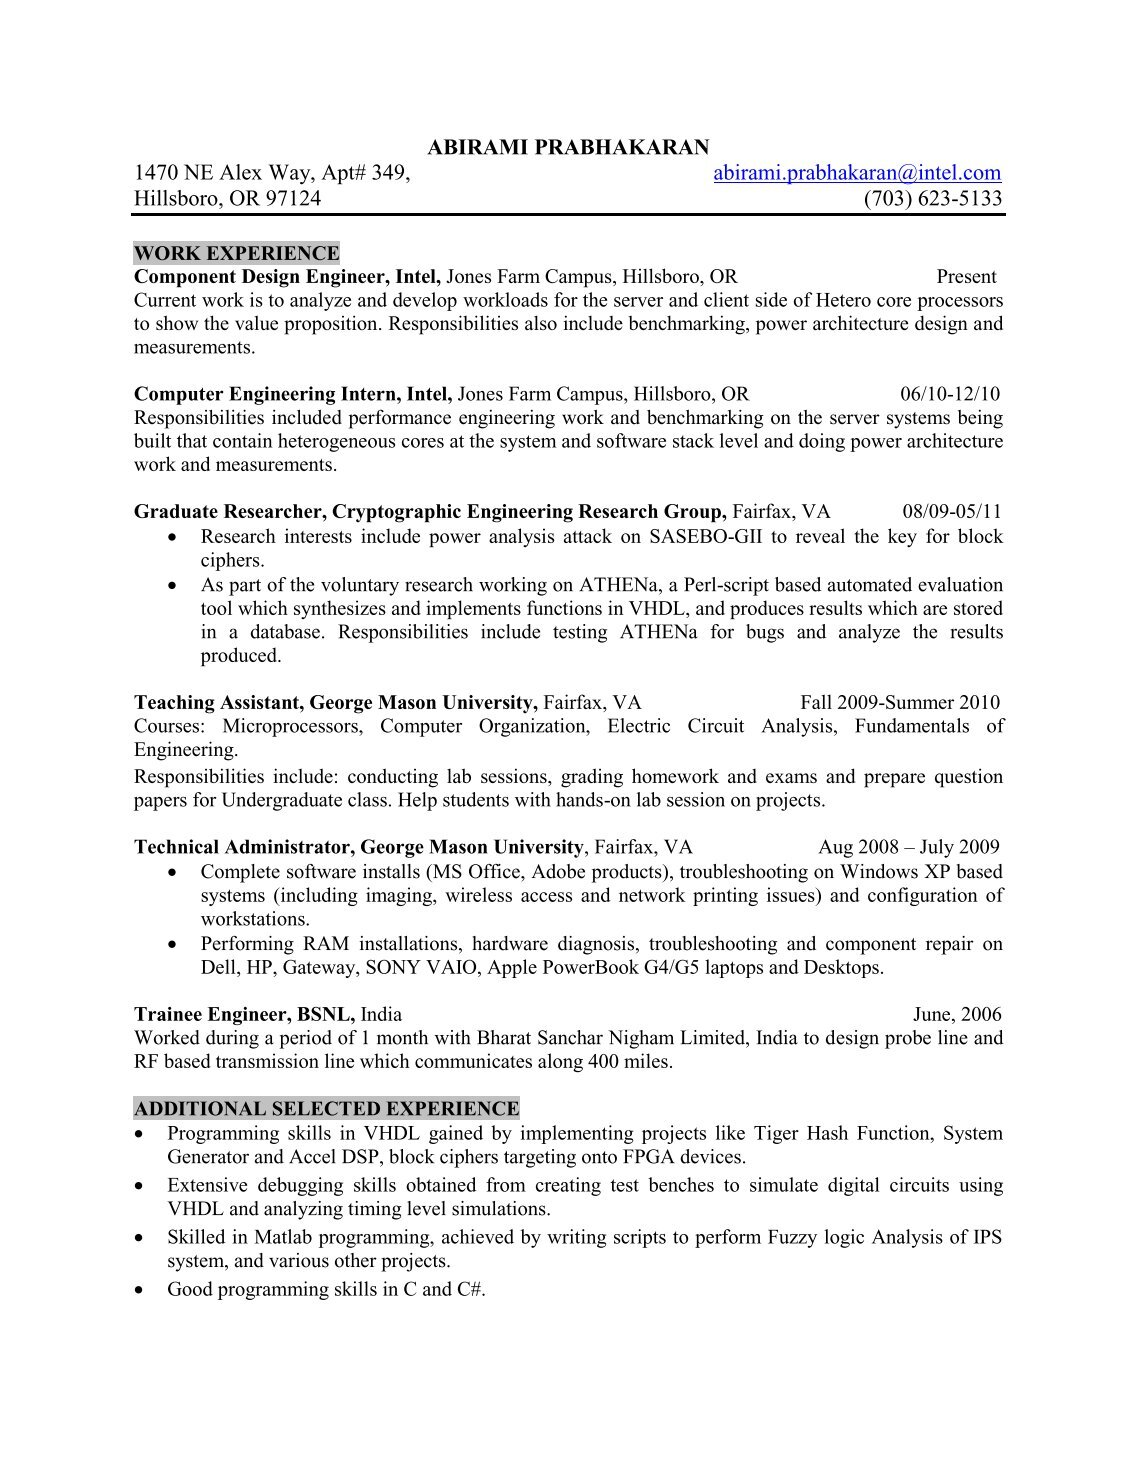 beaufiful network engineer intern images gallery resume format